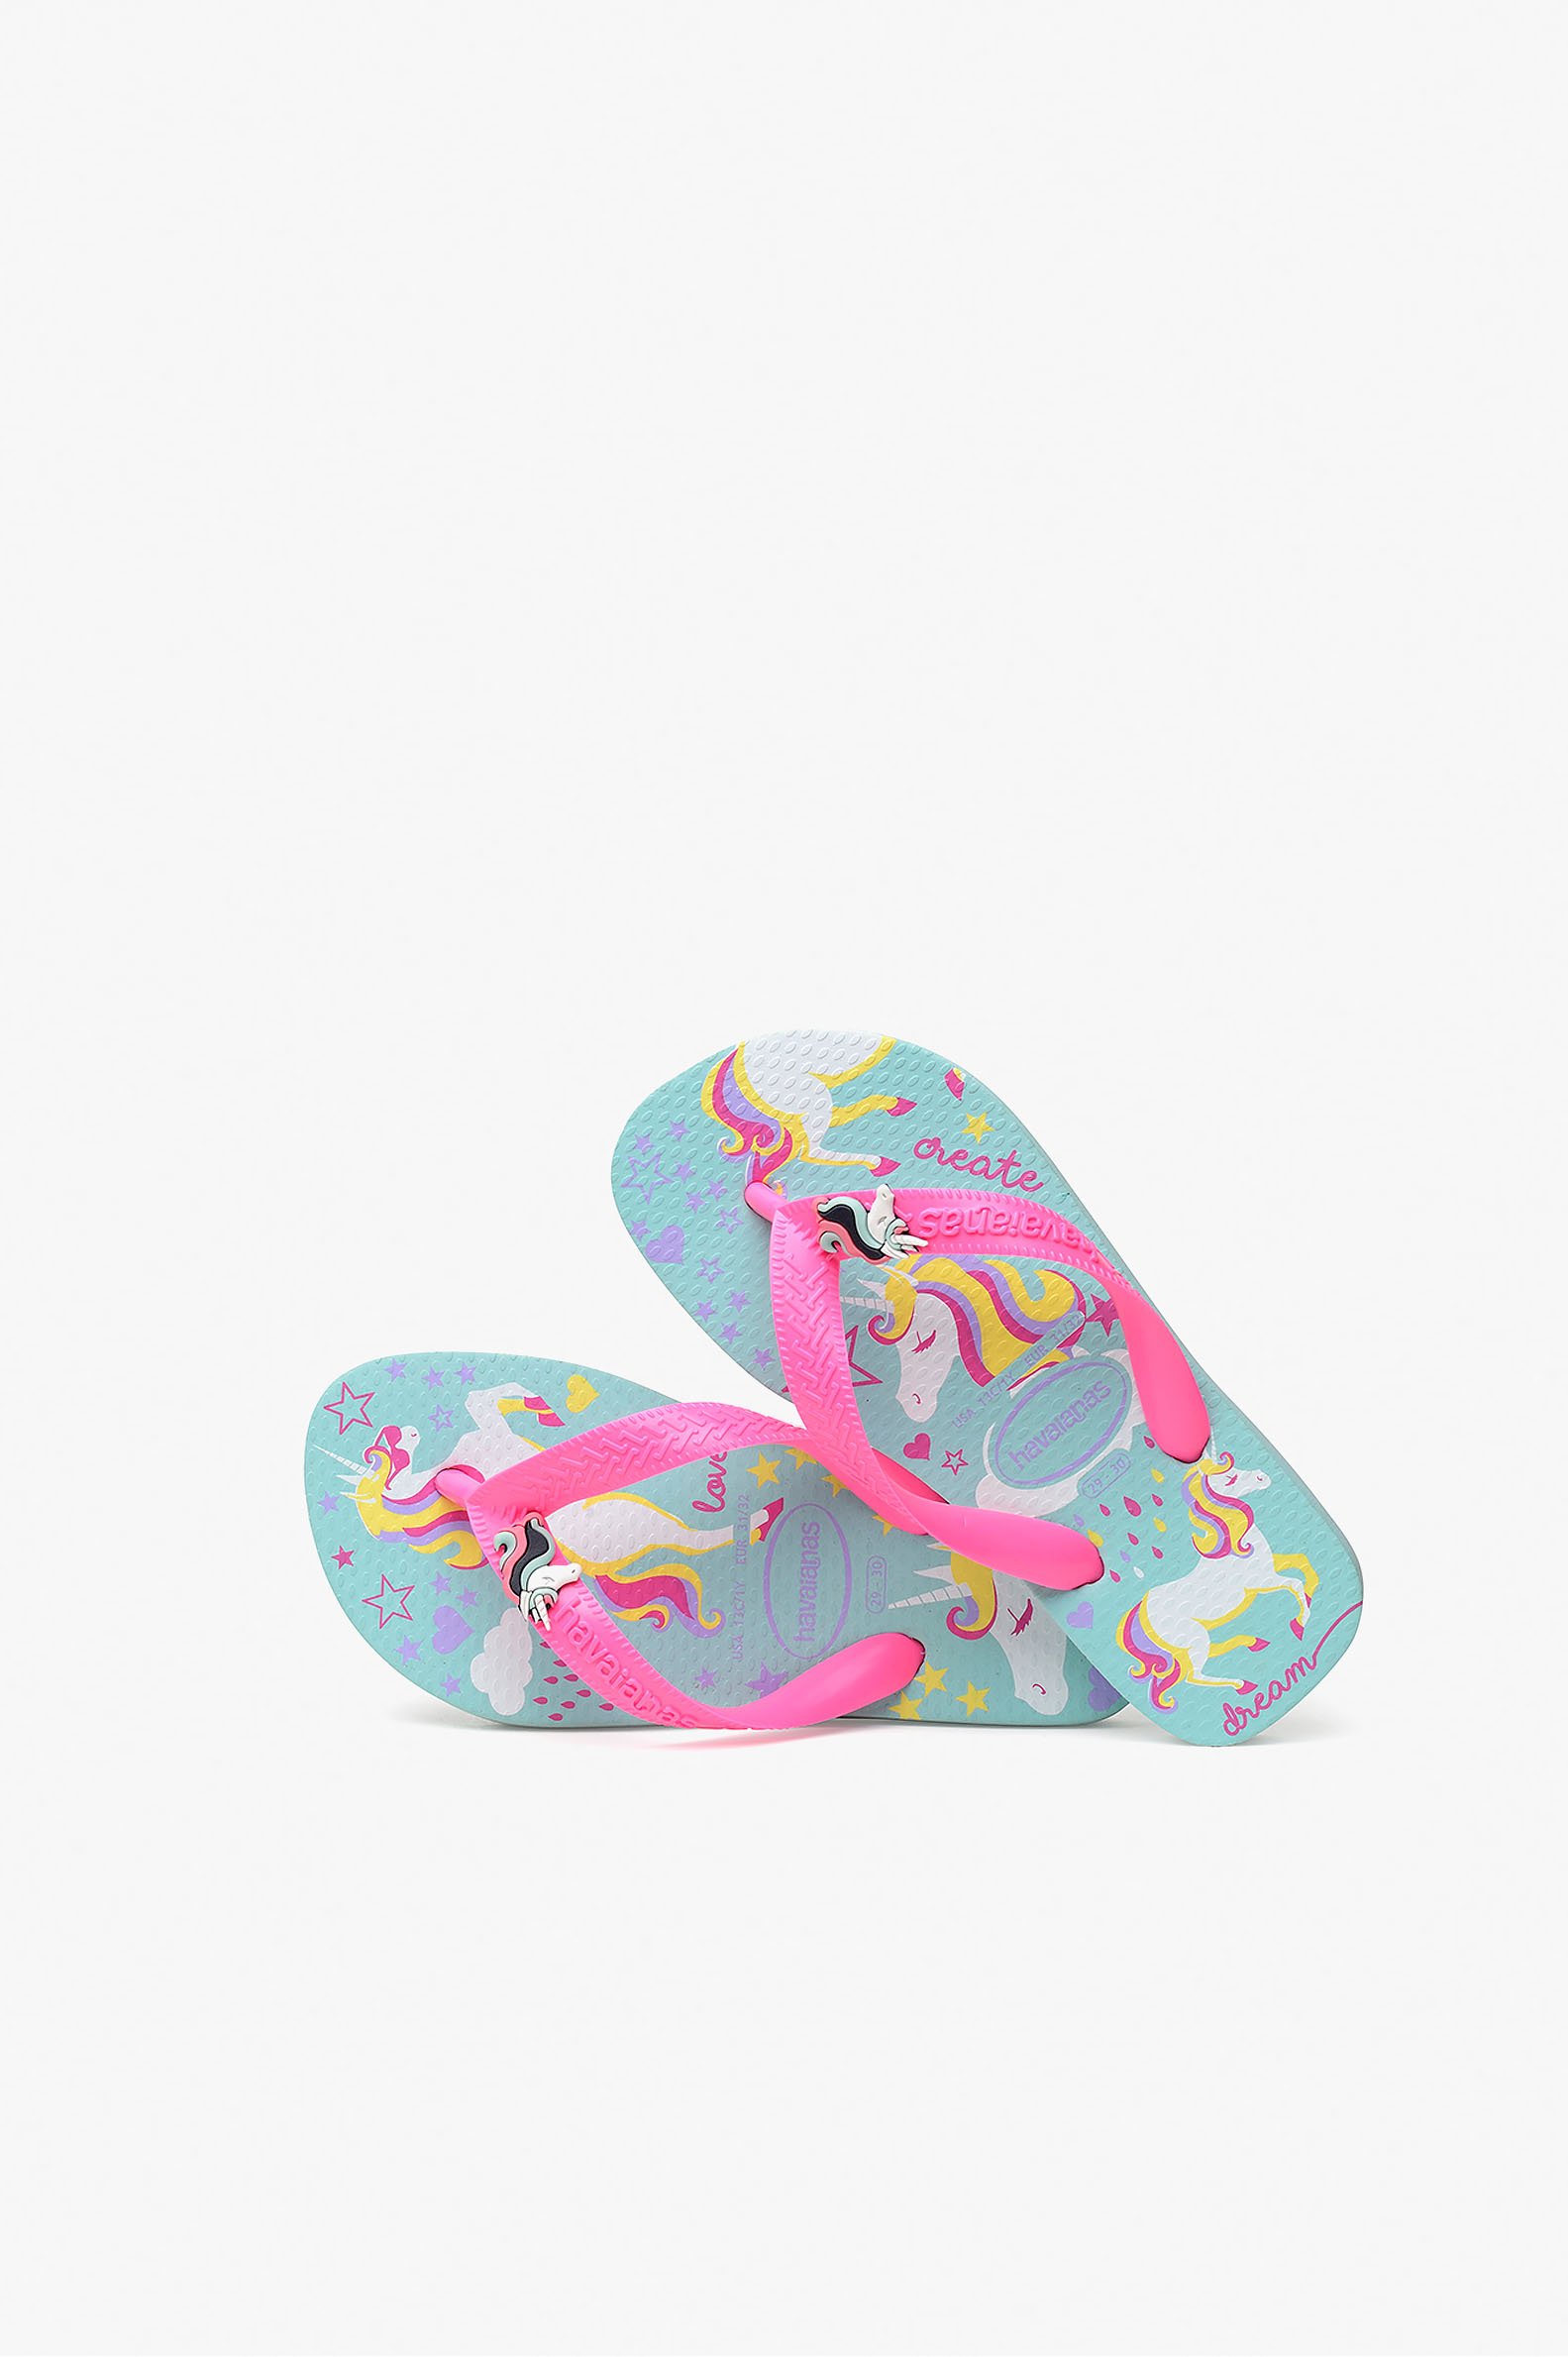 Top Havaianas Fantasy Juniora Moda Chancla bYI6mf7gyv